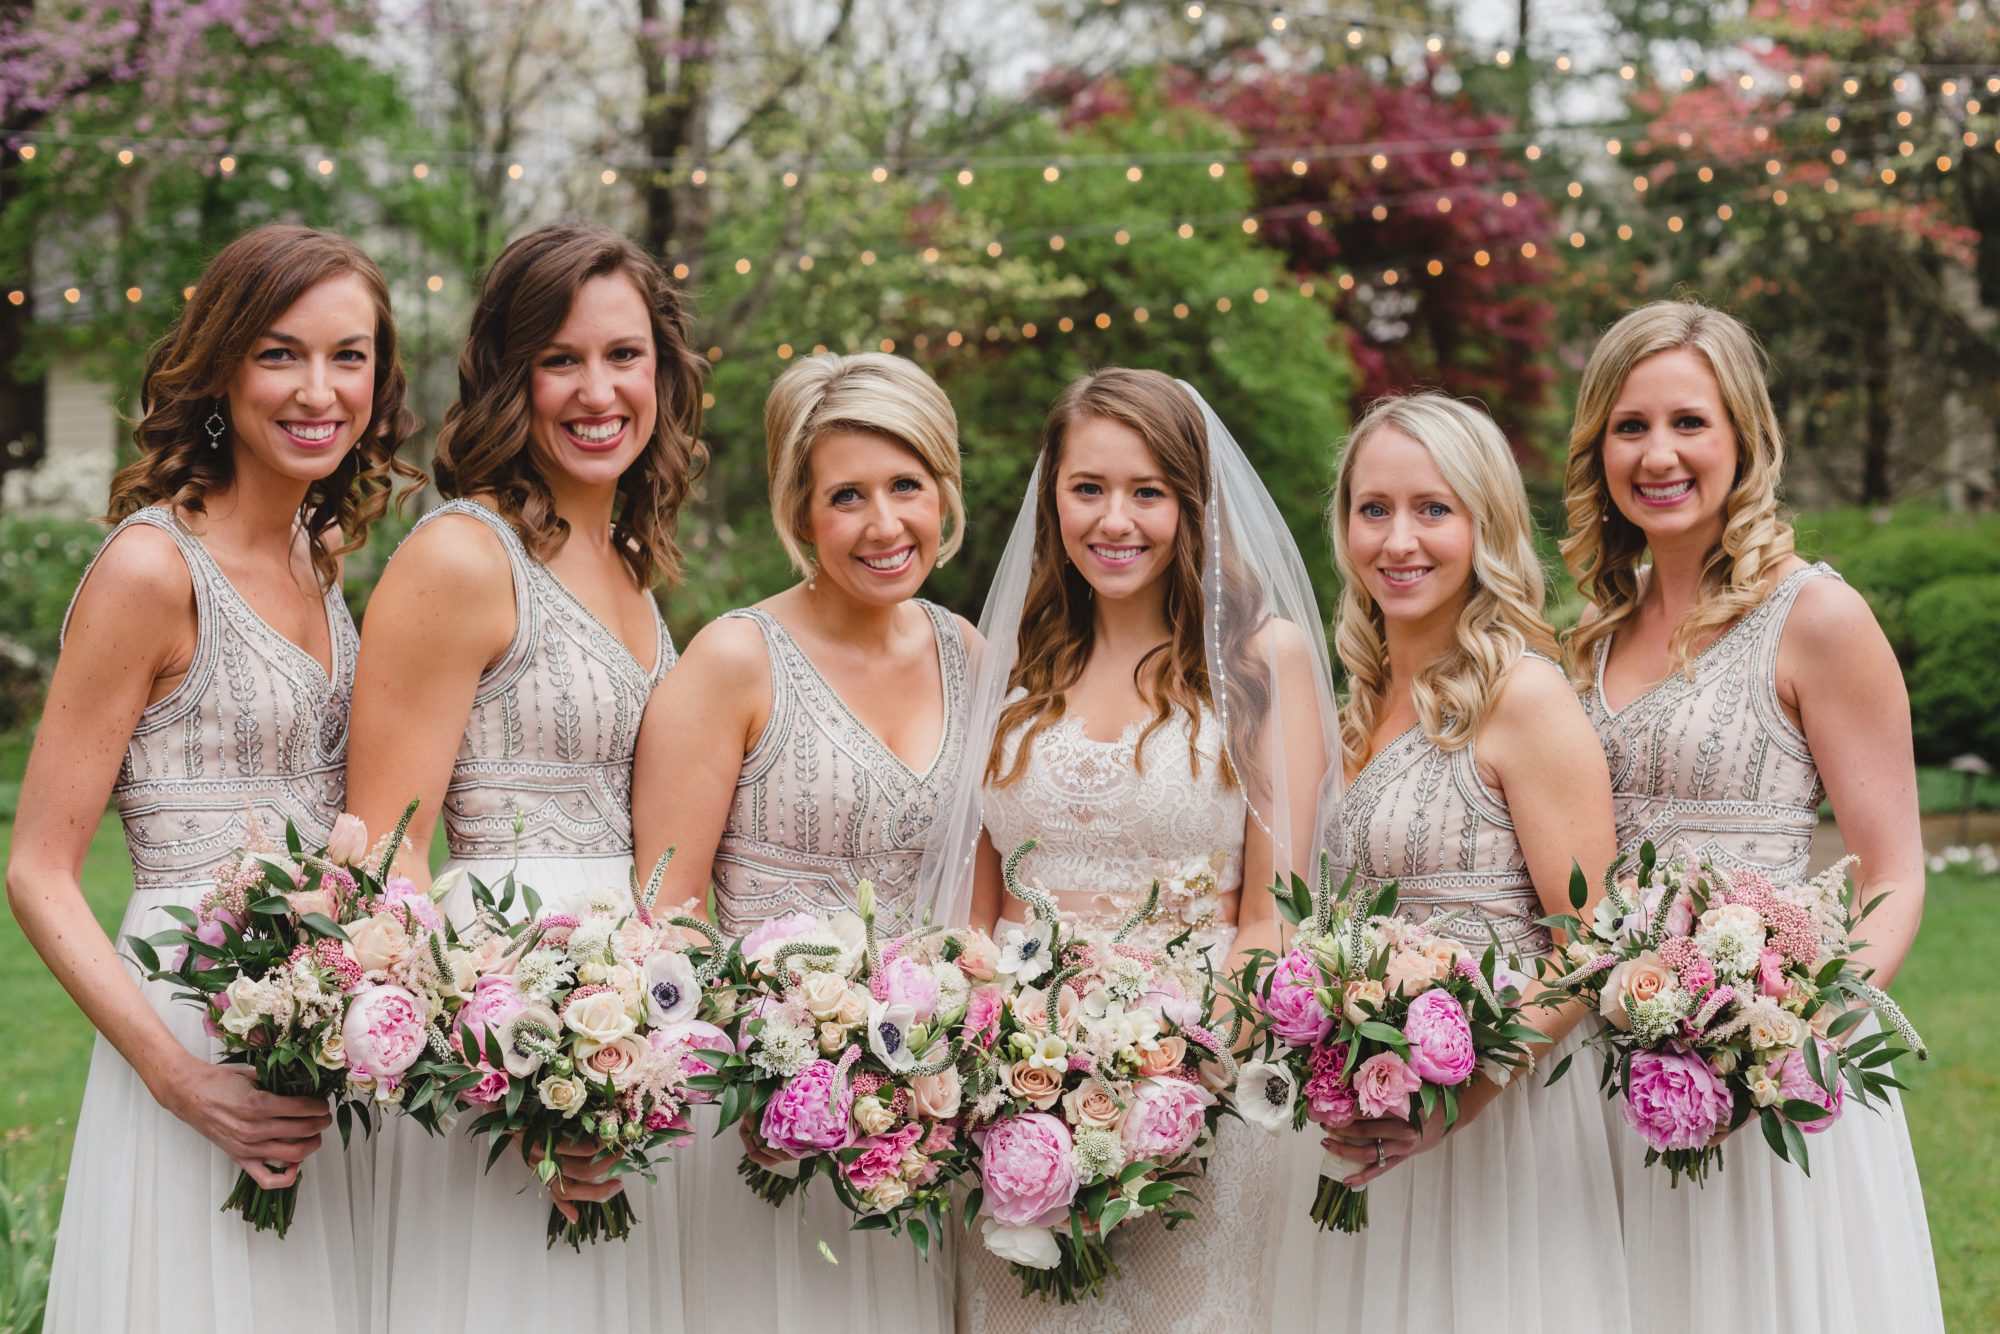 Bridesmaids in Beaded White Gowns